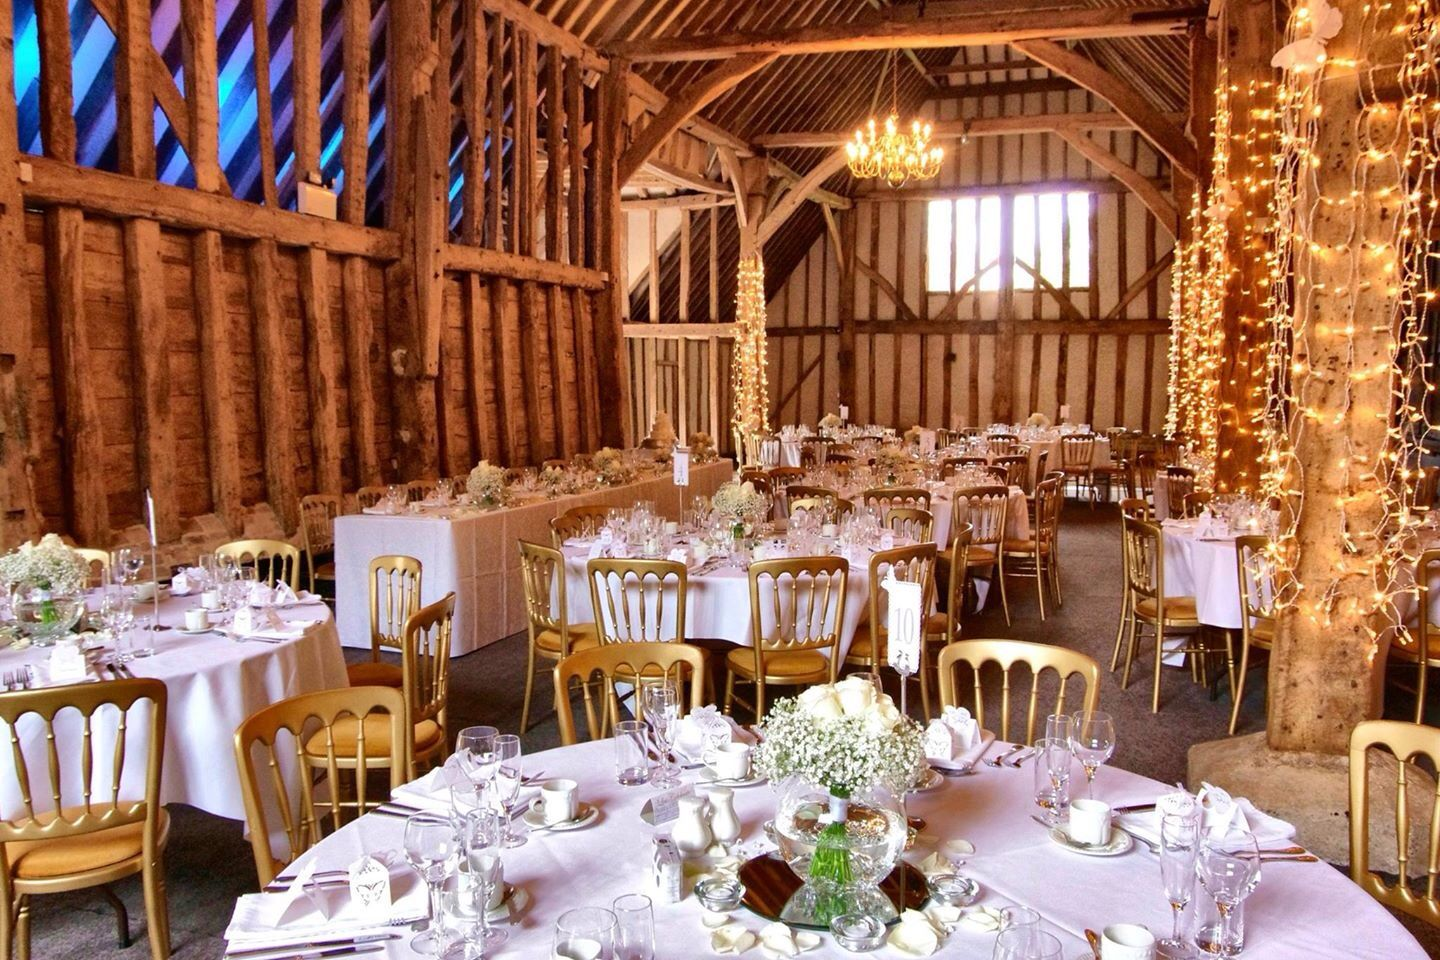 Find This Pin And More On I Do Wedding Venue By Katydx